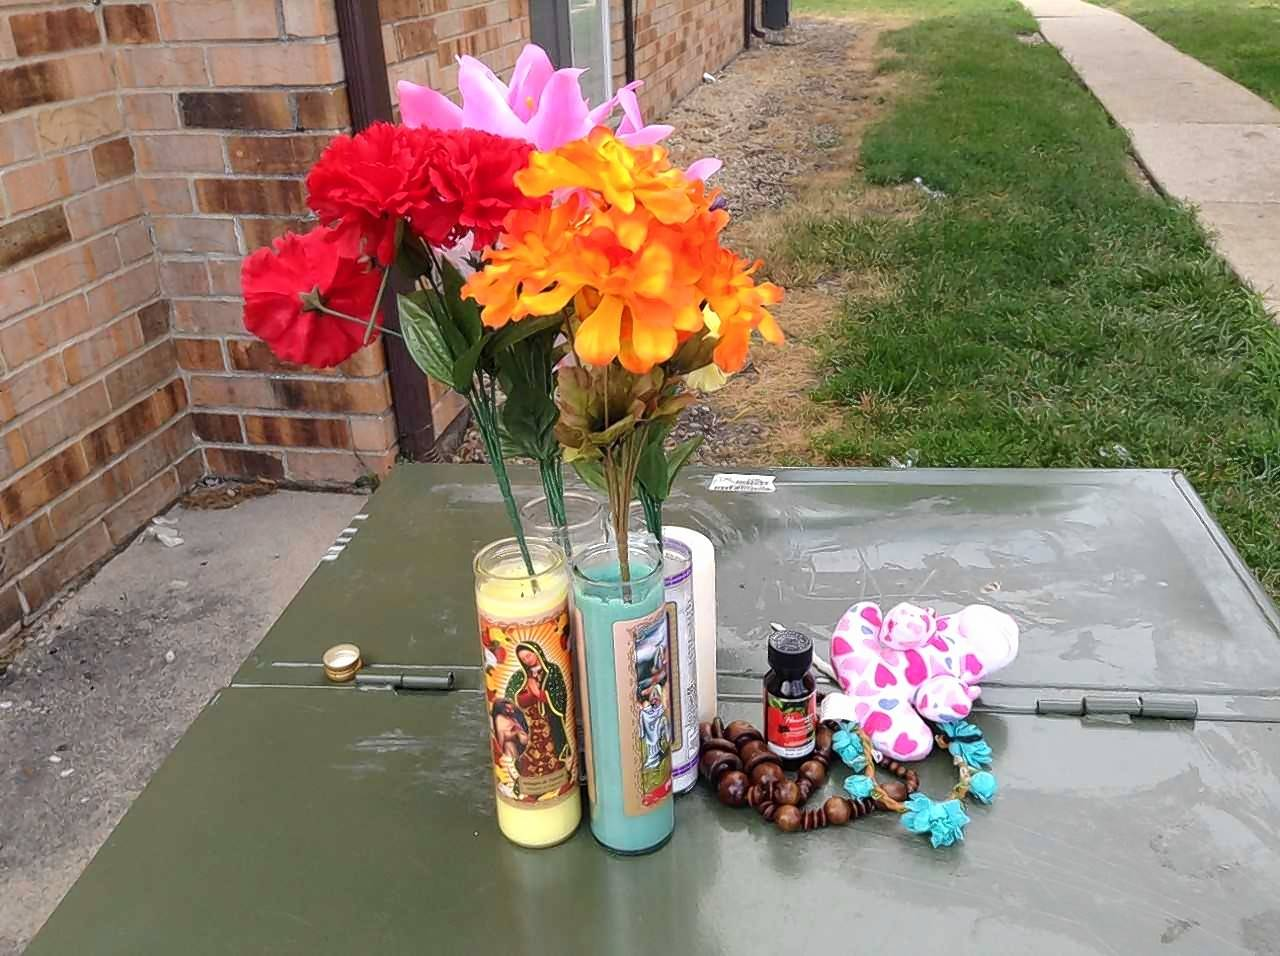 Flowers and candles were placed outside a Des Plaines-area apartment building Sunday, where a 17-year-old Glenview girl was fatally shot early Saturday. The Cook County Sheriff's Office is investigating the shooting.